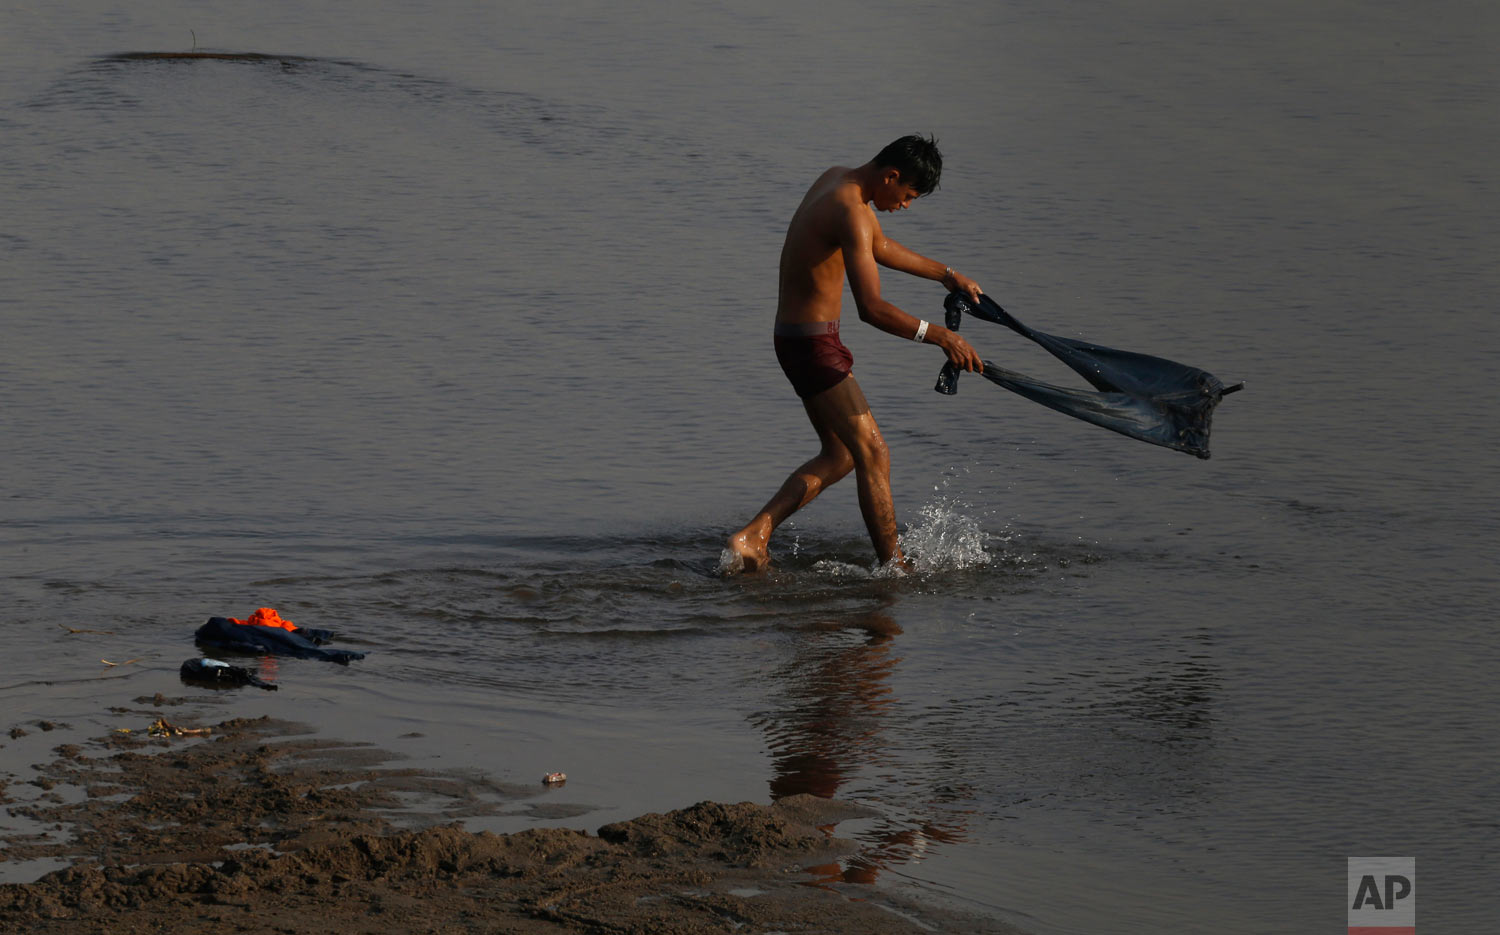 A Central American migrant awaiting a humanitarian visa from Mexico washes his pants in the Suchiate River, the natural the border between Mexico and Guatemala, on the riverbank near Ciudad Hidalgo, Chiapas state, Mexico, Jan. 20, 2019. (AP Photo/Marco Ugarte)